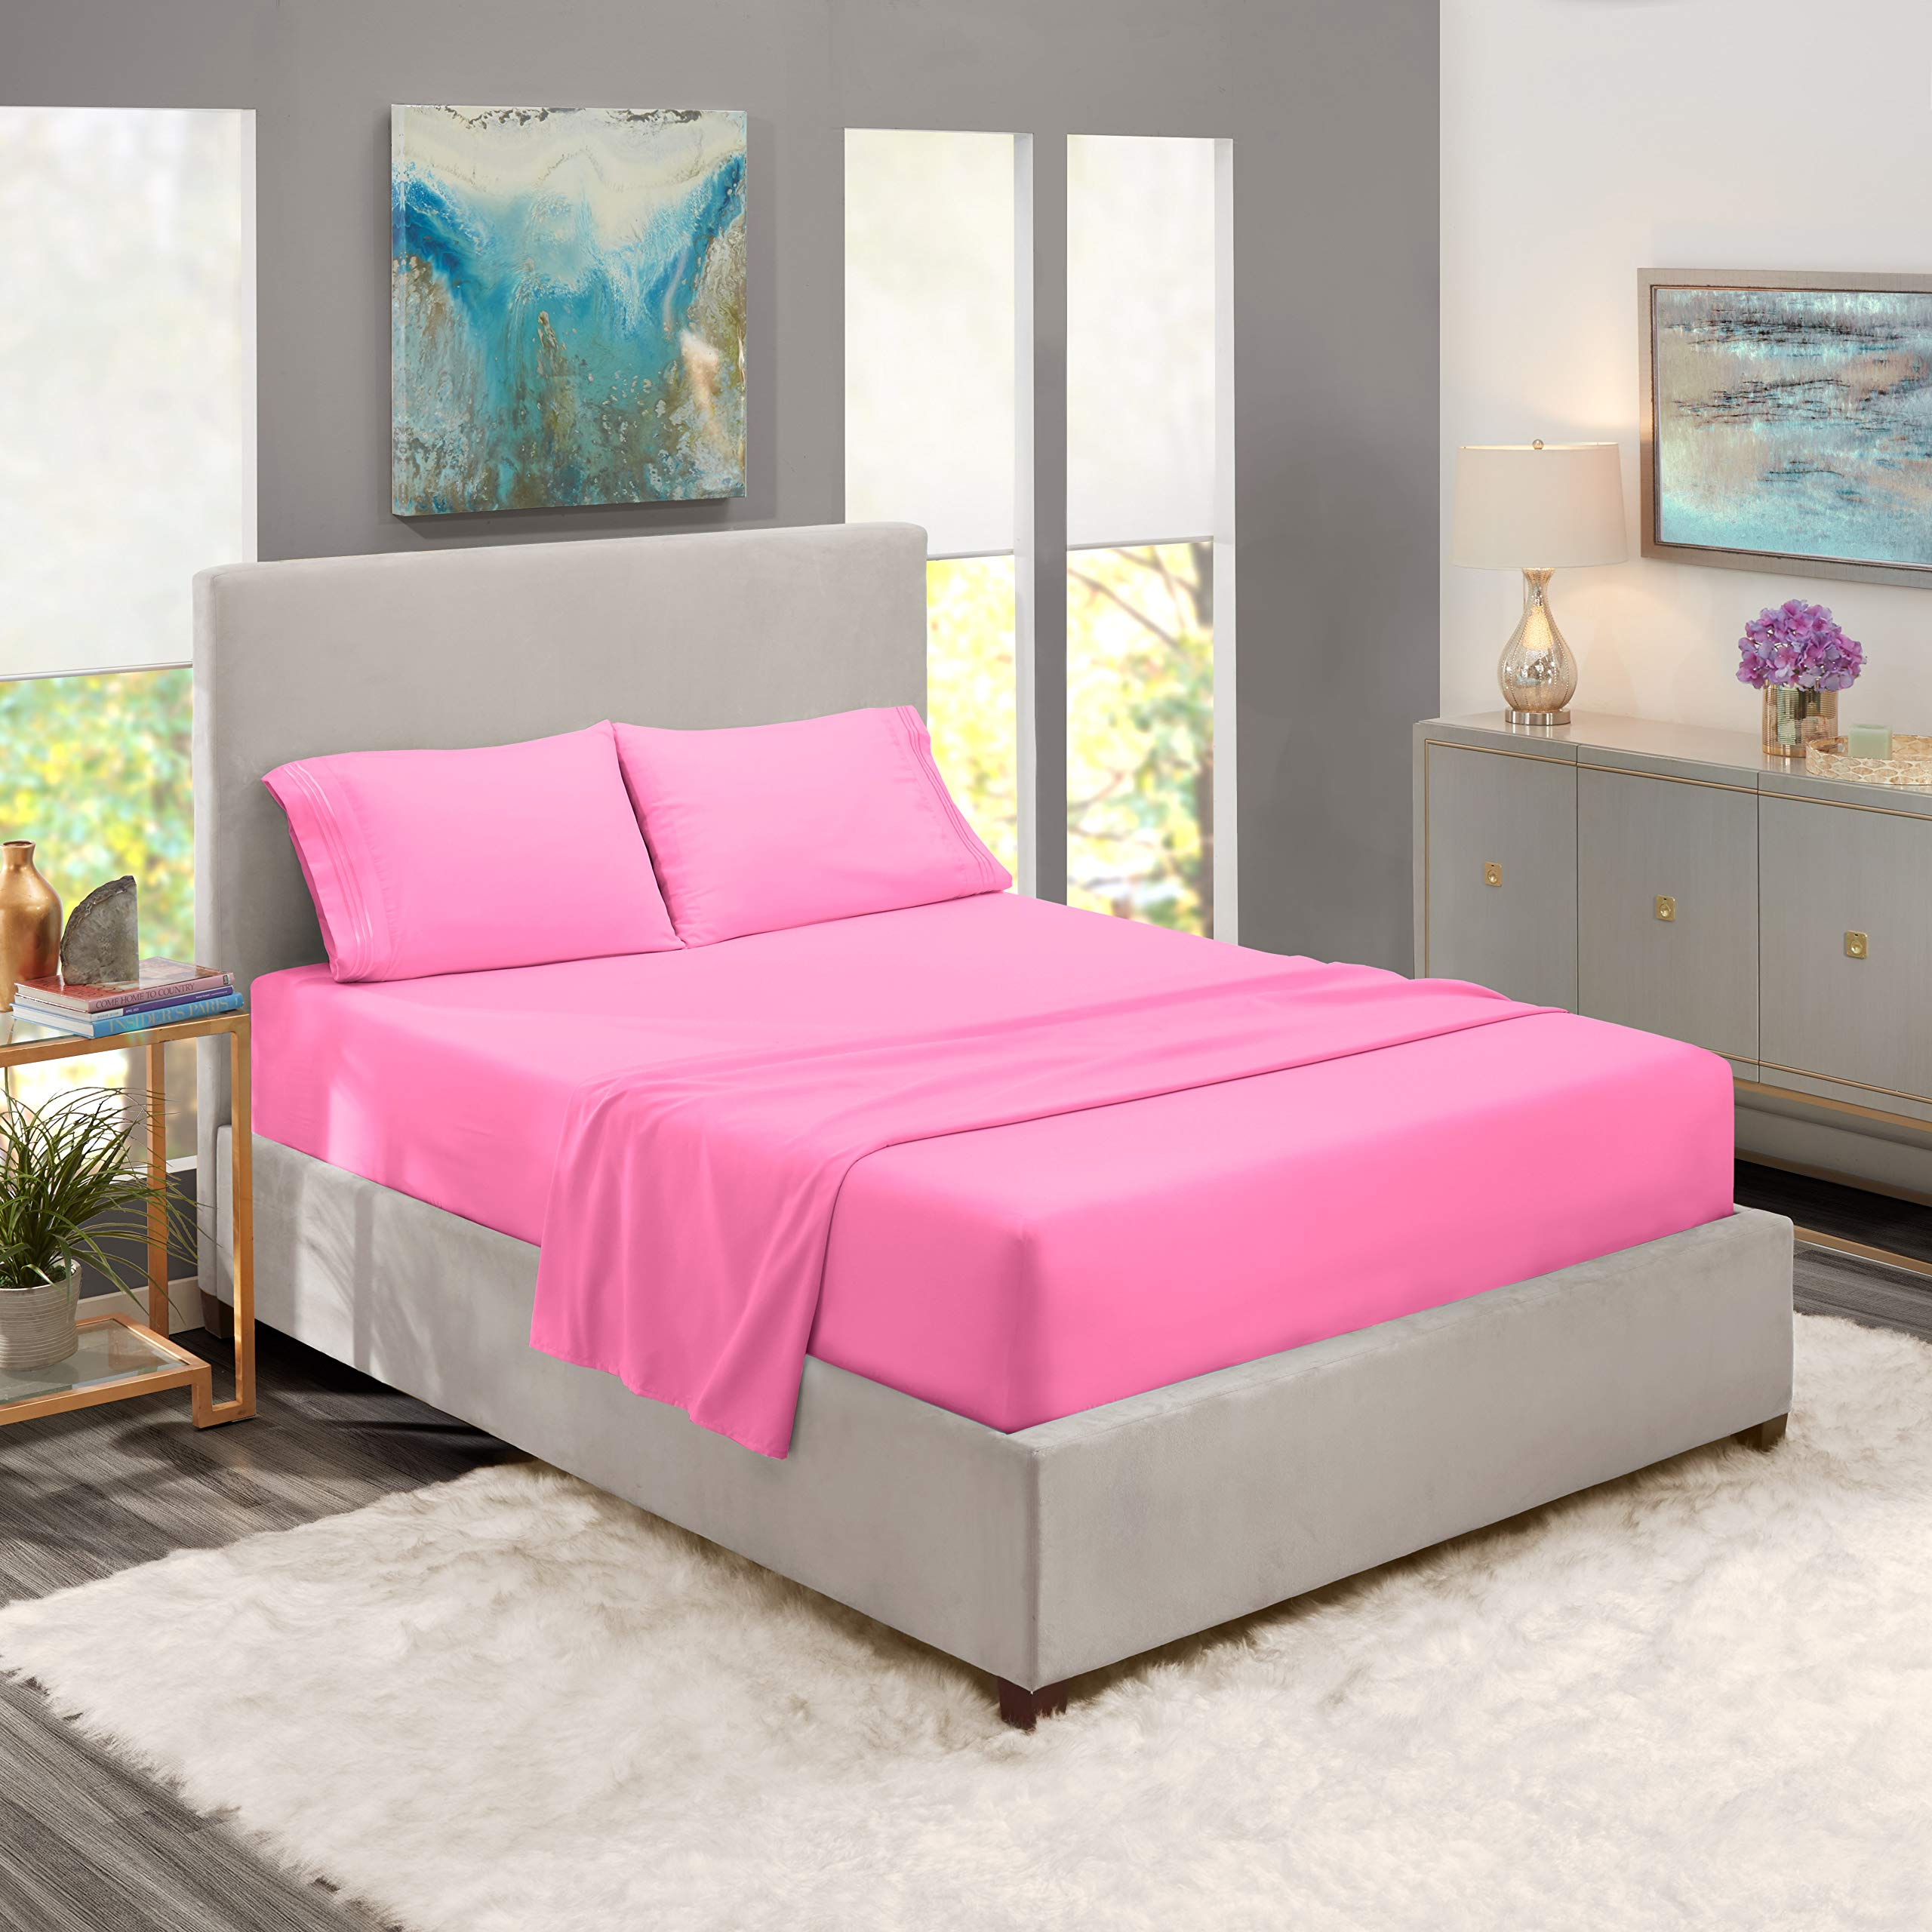 Nestl Deep Pocket Full Sheets: 4 Piece Full Size Bed Sheets with Fitted Sheet, Flat Sheet, Pillow Cases - Extra Soft Microfiber Bedsheet Set with Deep Pockets for Full Sized Mattress - Light Pink